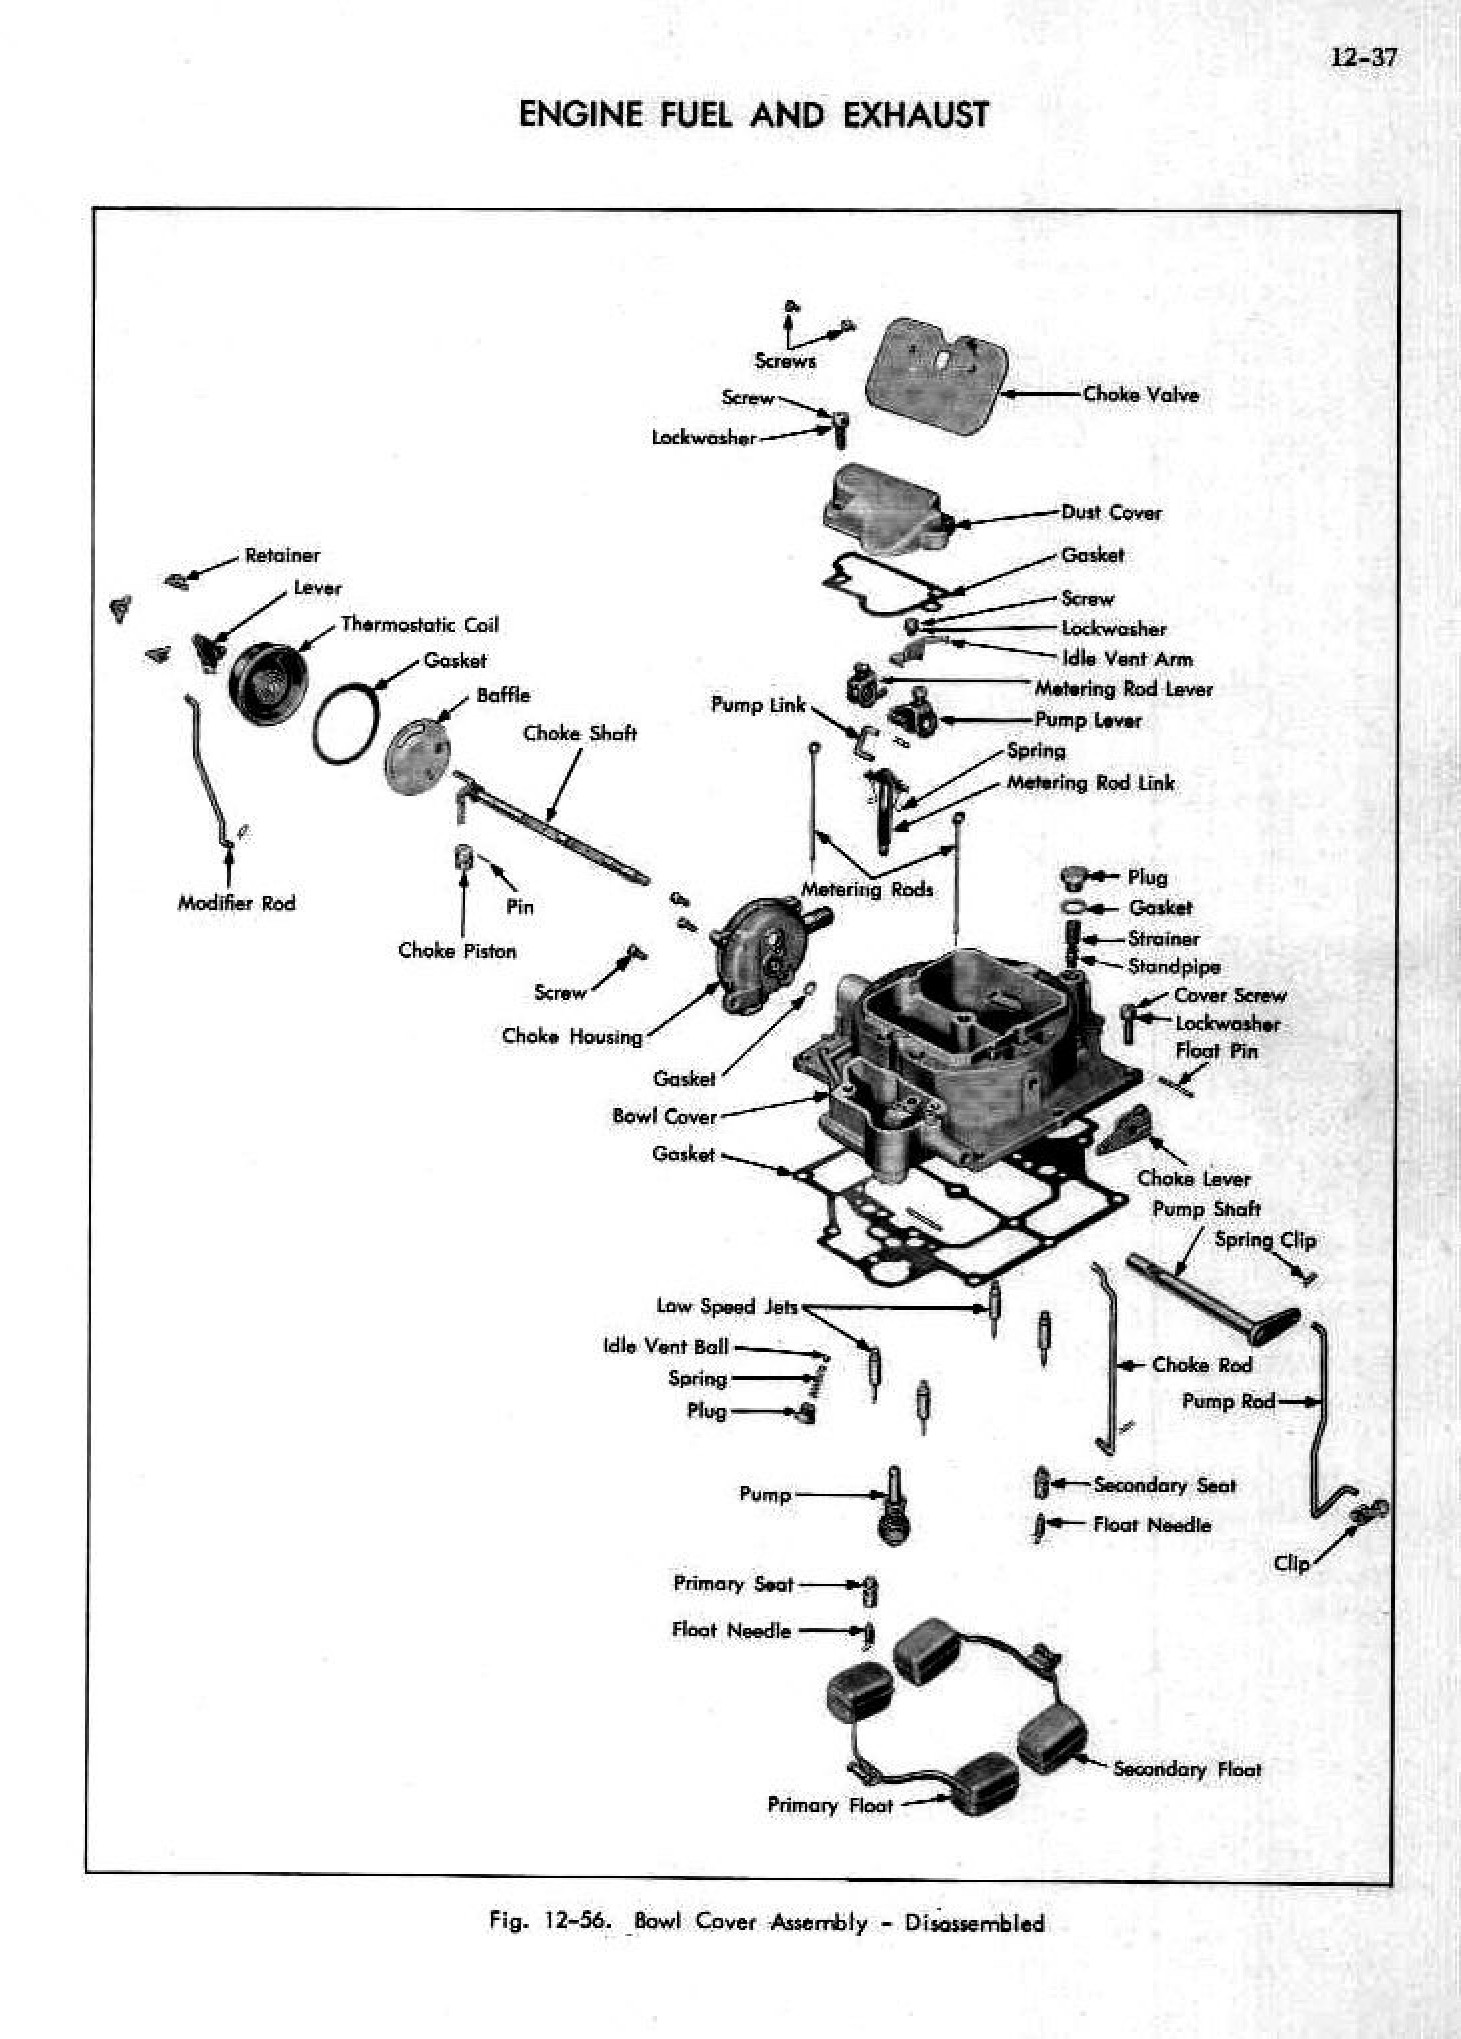 1952 Cadillac Shop Manual- Engine Fuel and Exhaust Page 37